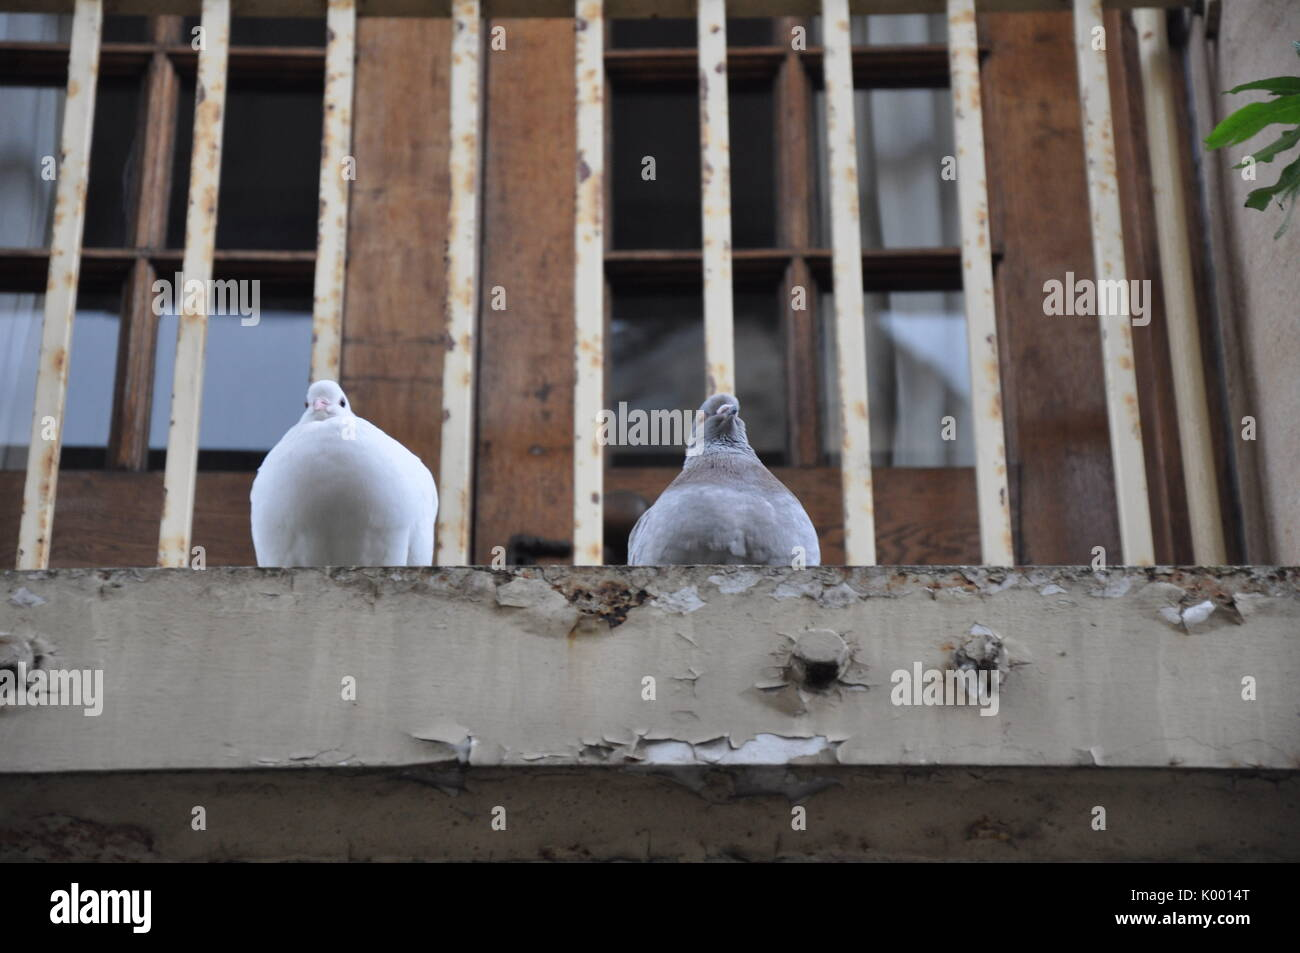 Two pigeons on ledge - Stock Image